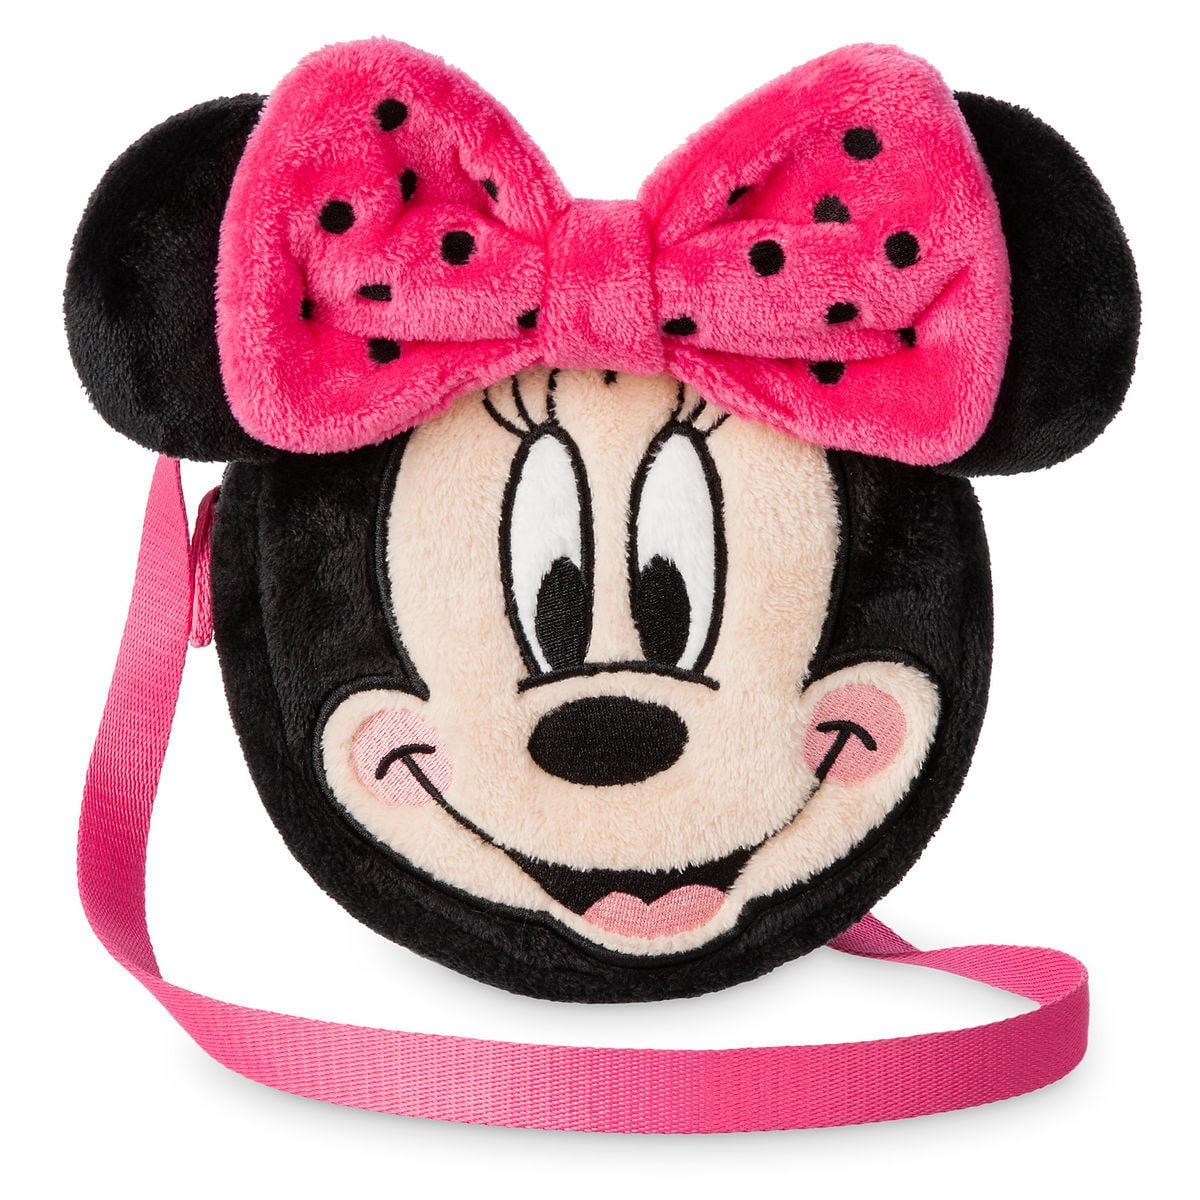 597119814c0f8 Product Image of Minnie Mouse Plush Purse for Girls   1